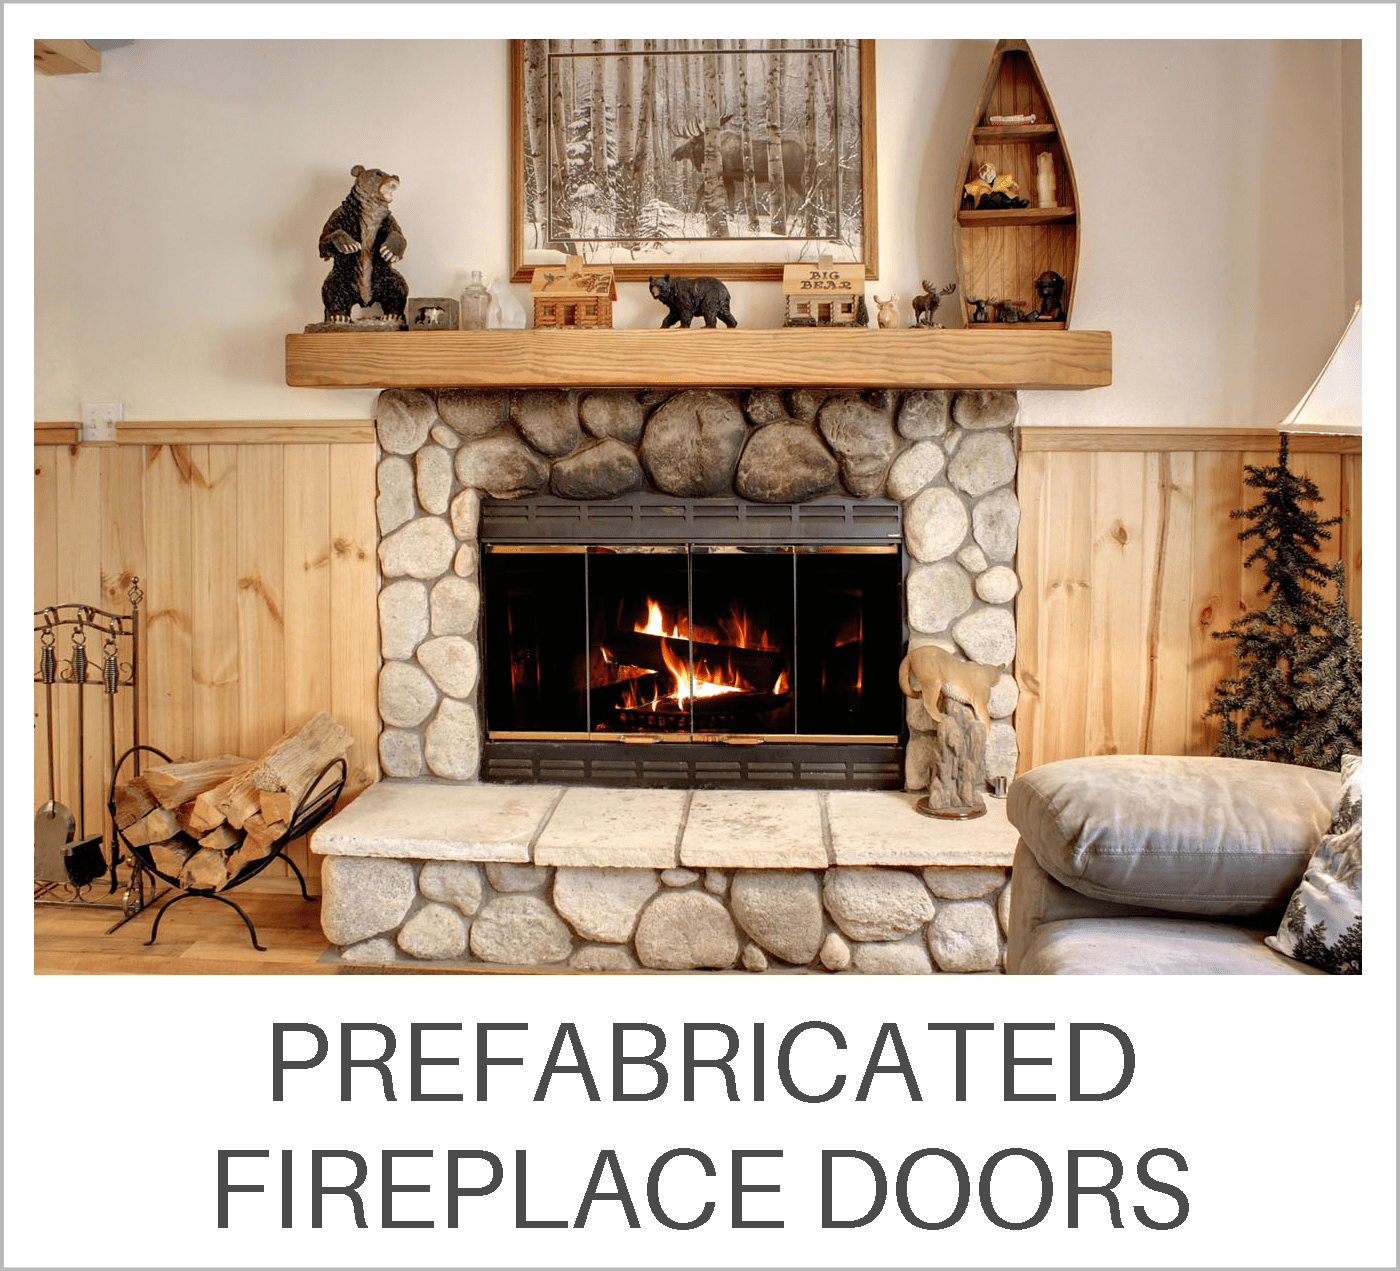 Prefabricated Fireplace Doors Learning Center